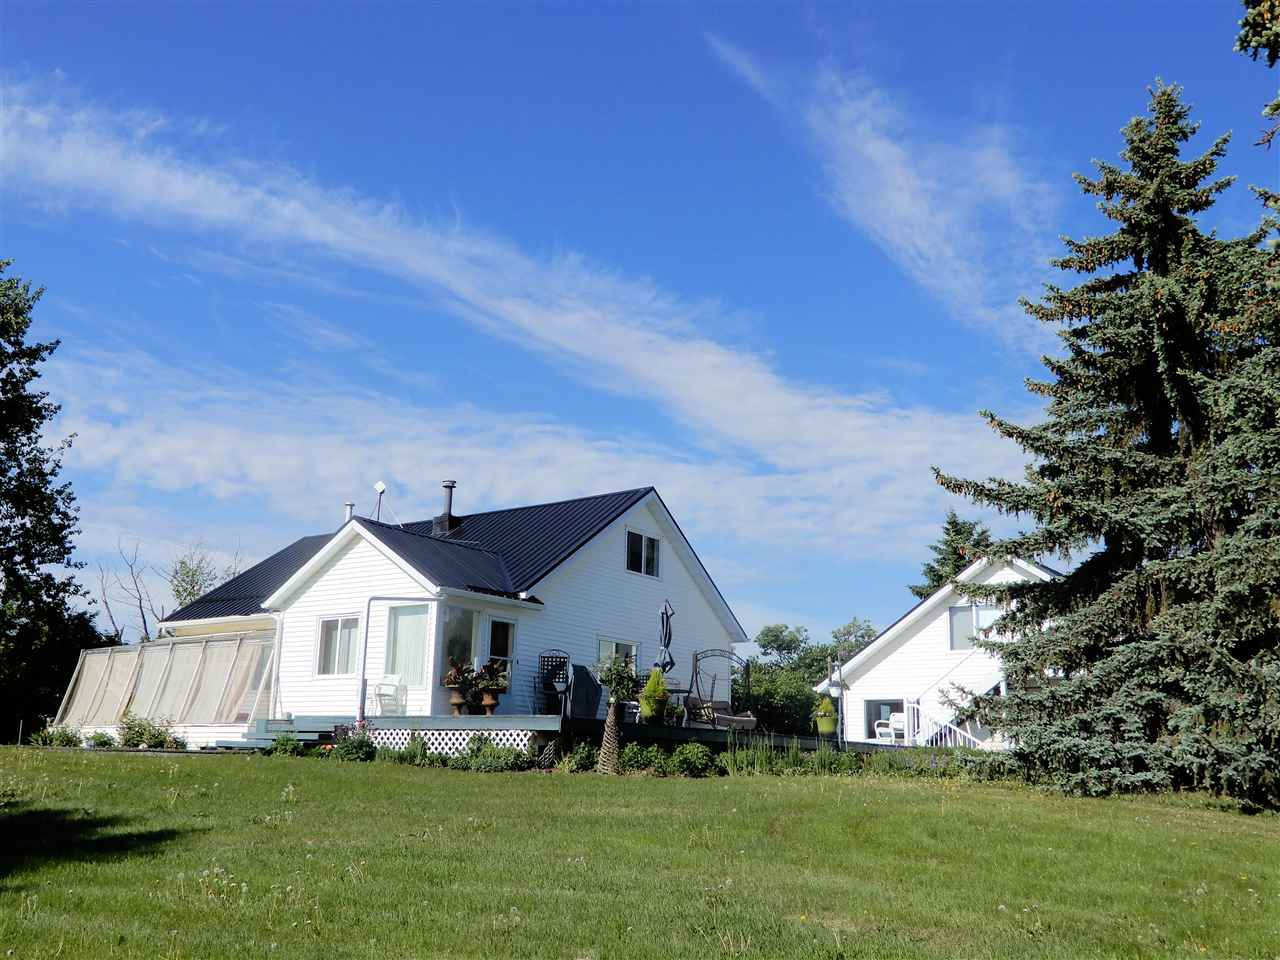 Photo 3: 55109 Range Road 260: Rural Sturgeon County House for sale : MLS® # E4068603